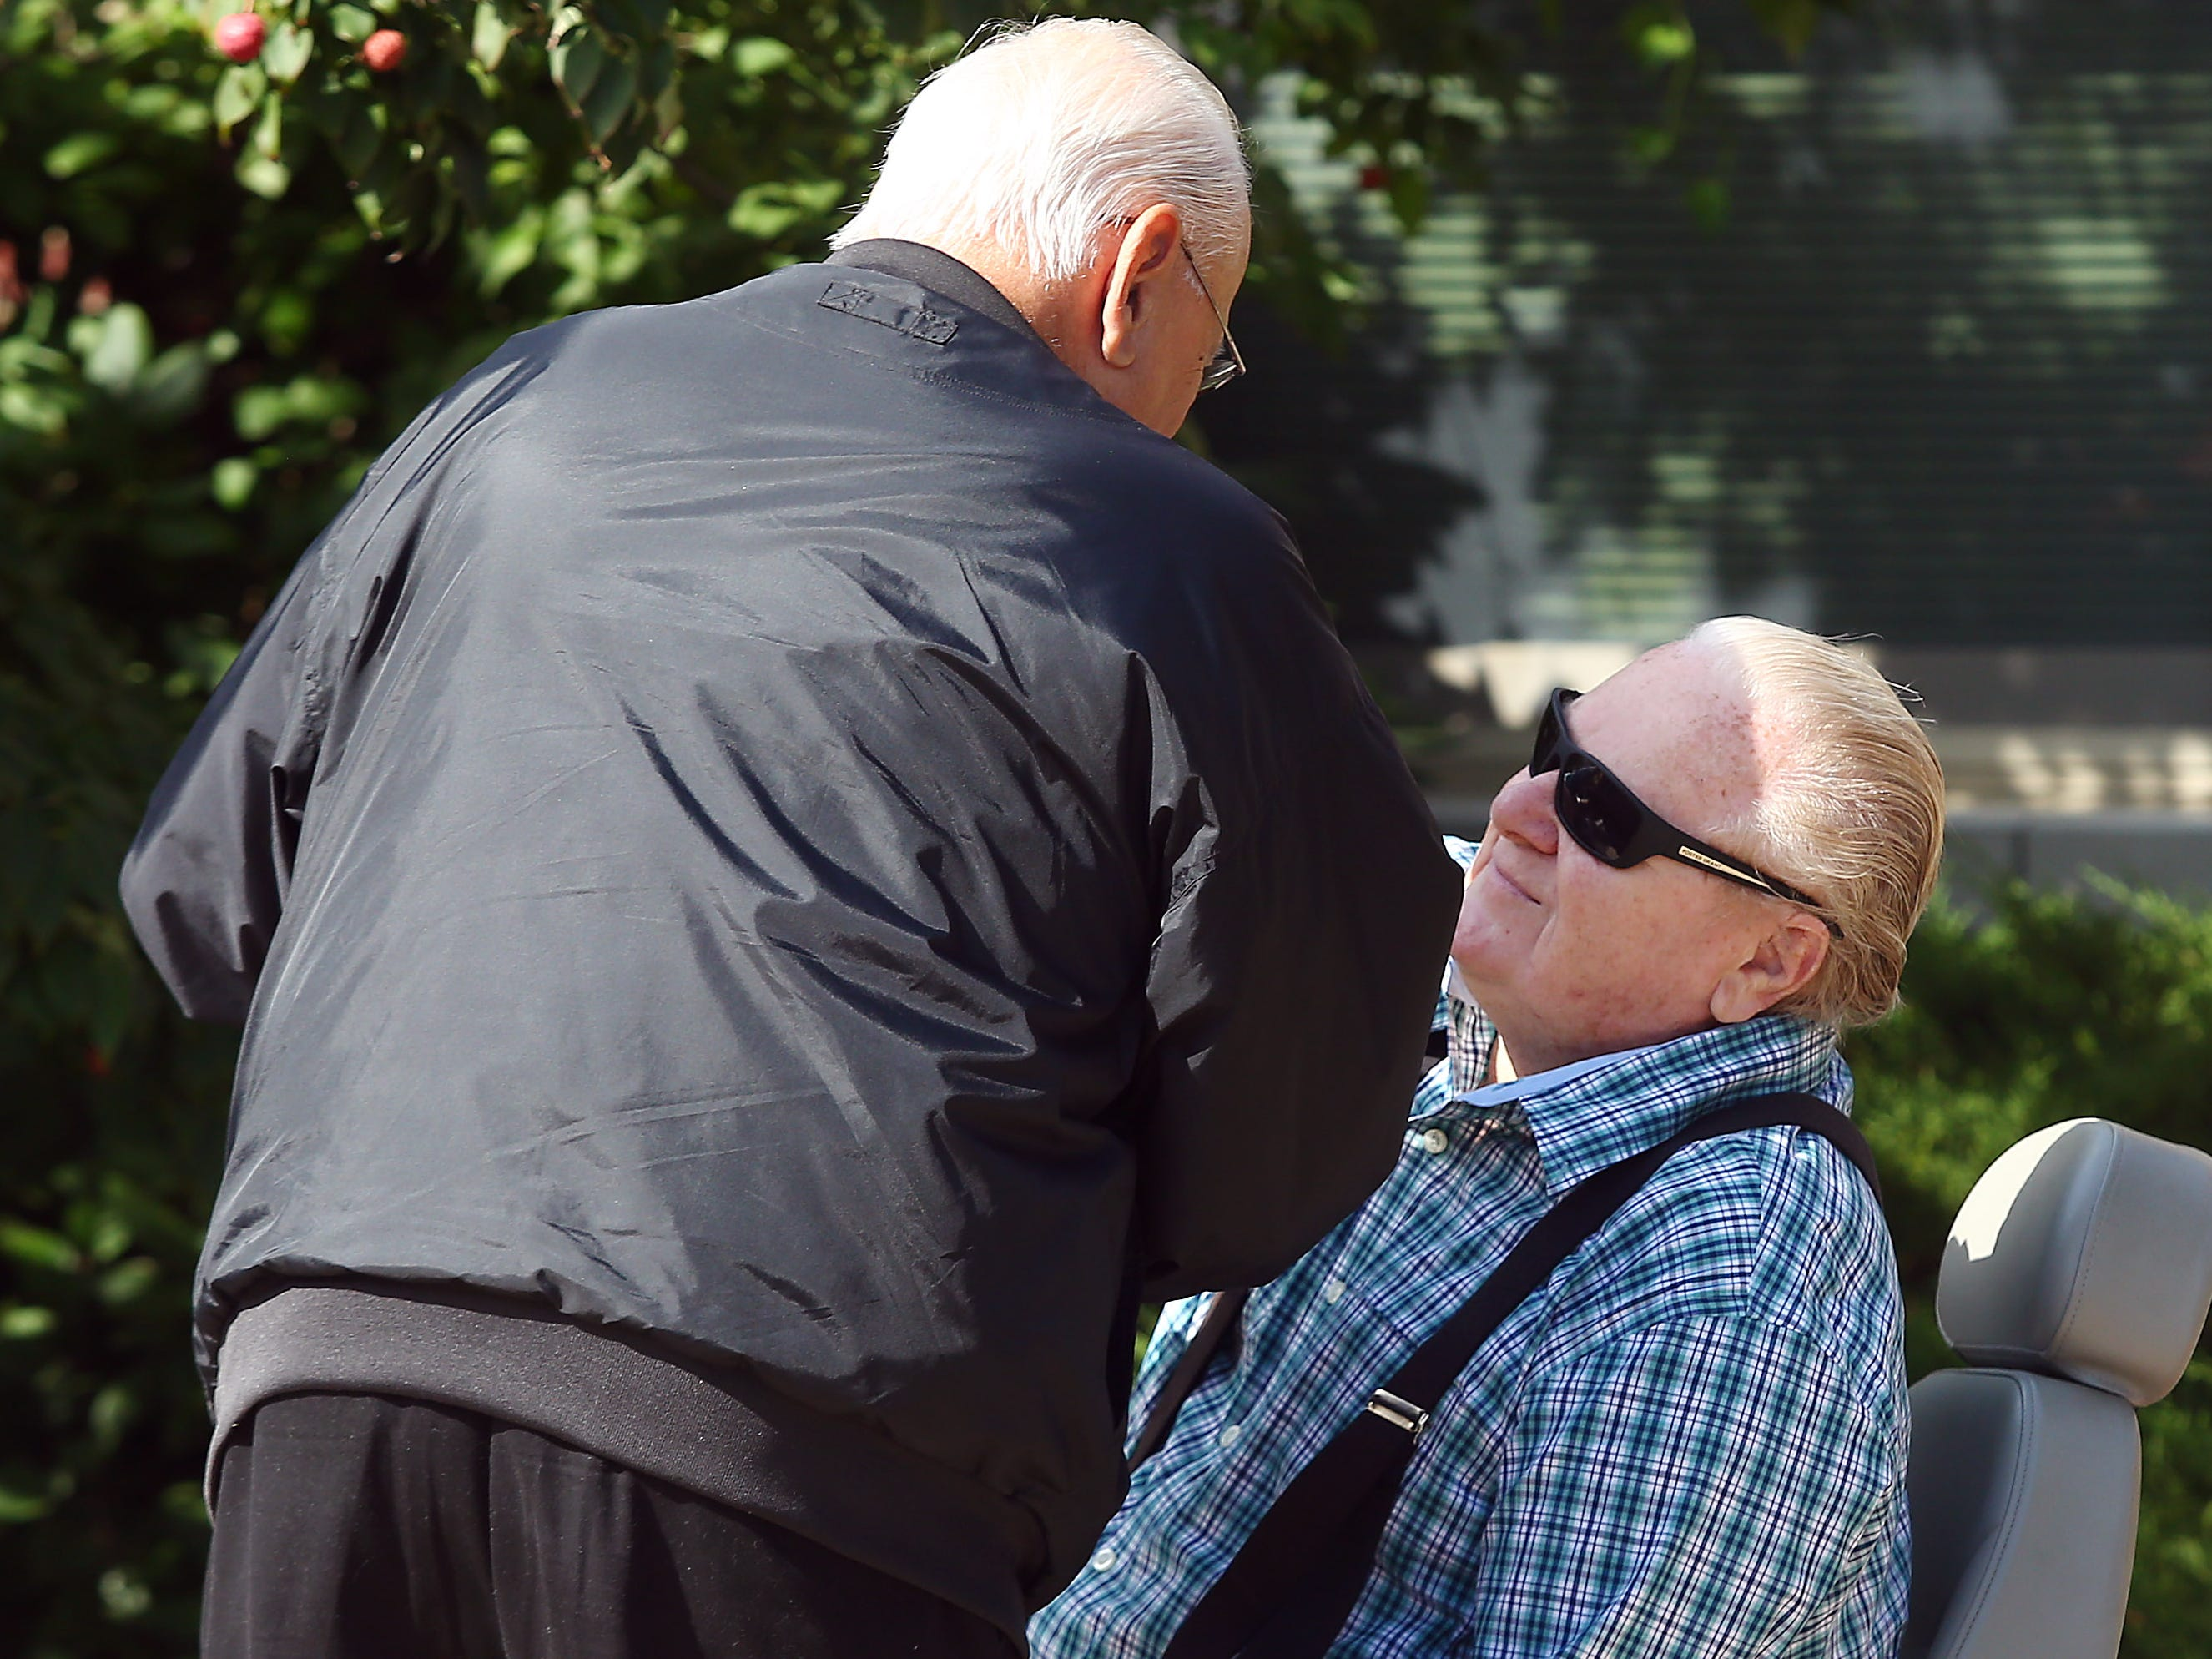 Steve Bolcar shakes hands with life-long friend Joseph Mihalko at the Hanover Municipal Building during his Police-style clapout for retirement of the 60-year officer and crossing guard. October 3, 2018, Hanover, NJ